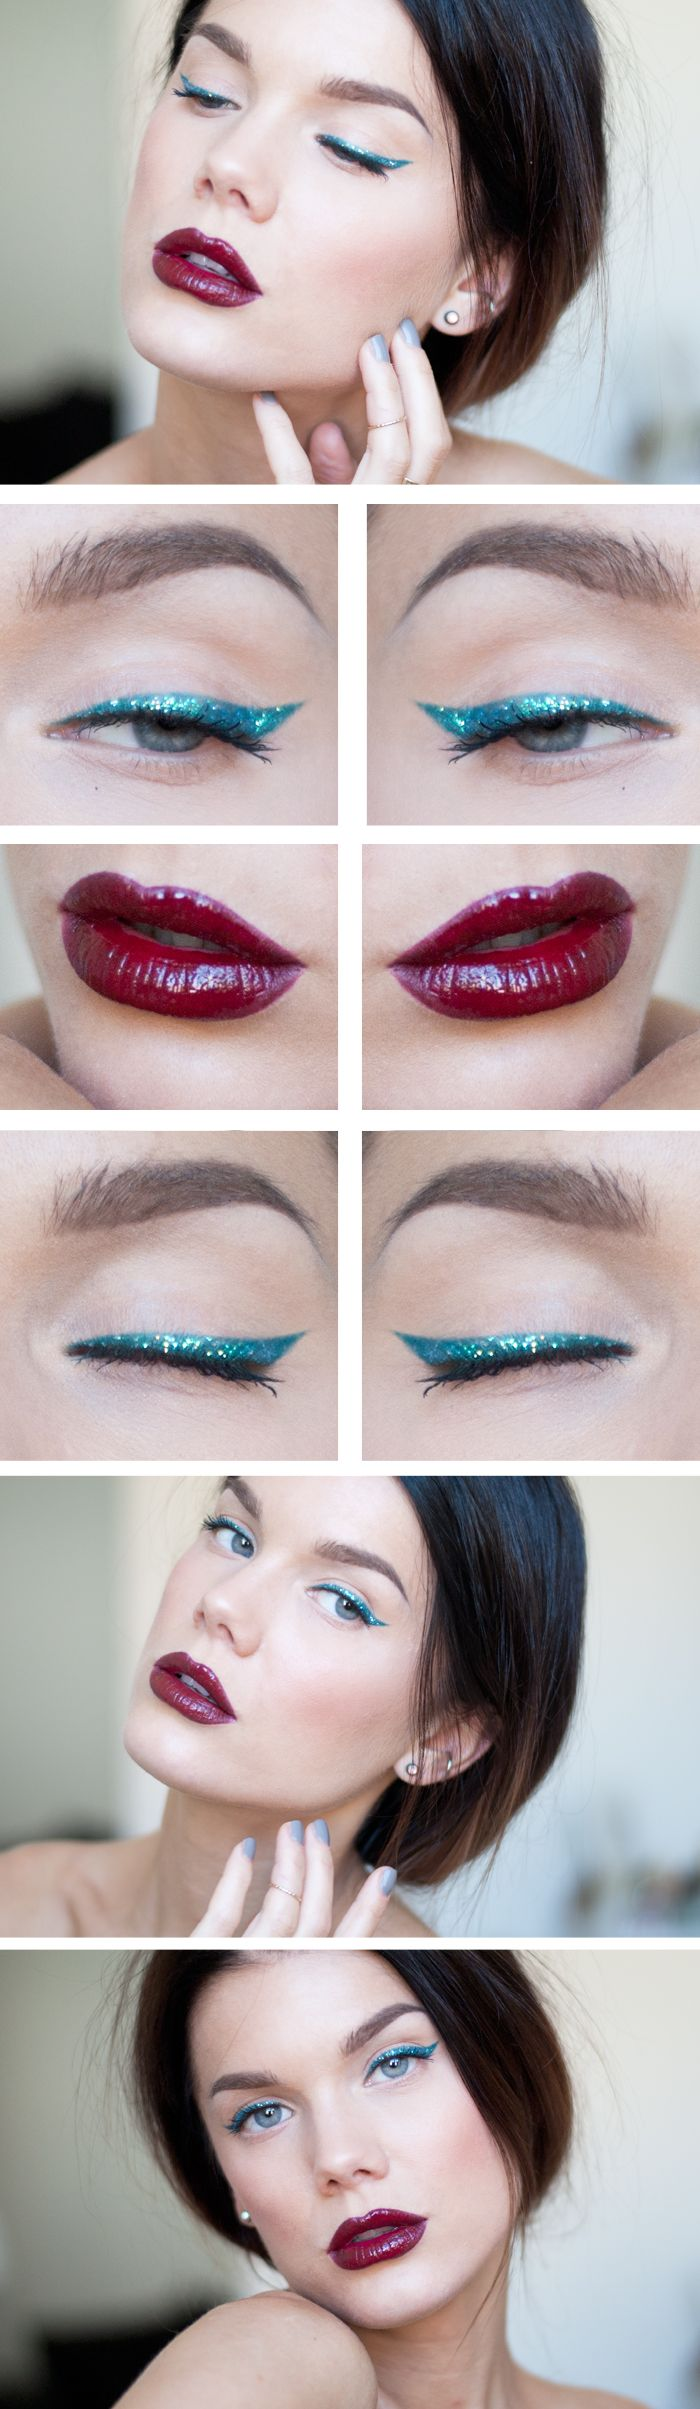 """Today's Look : """"Back in Business"""" -Linda Hallberg (a very glamorous look in spite of very few products being used! A green eyeliner, glitter, and a dark bold lip.) 08/20/13"""